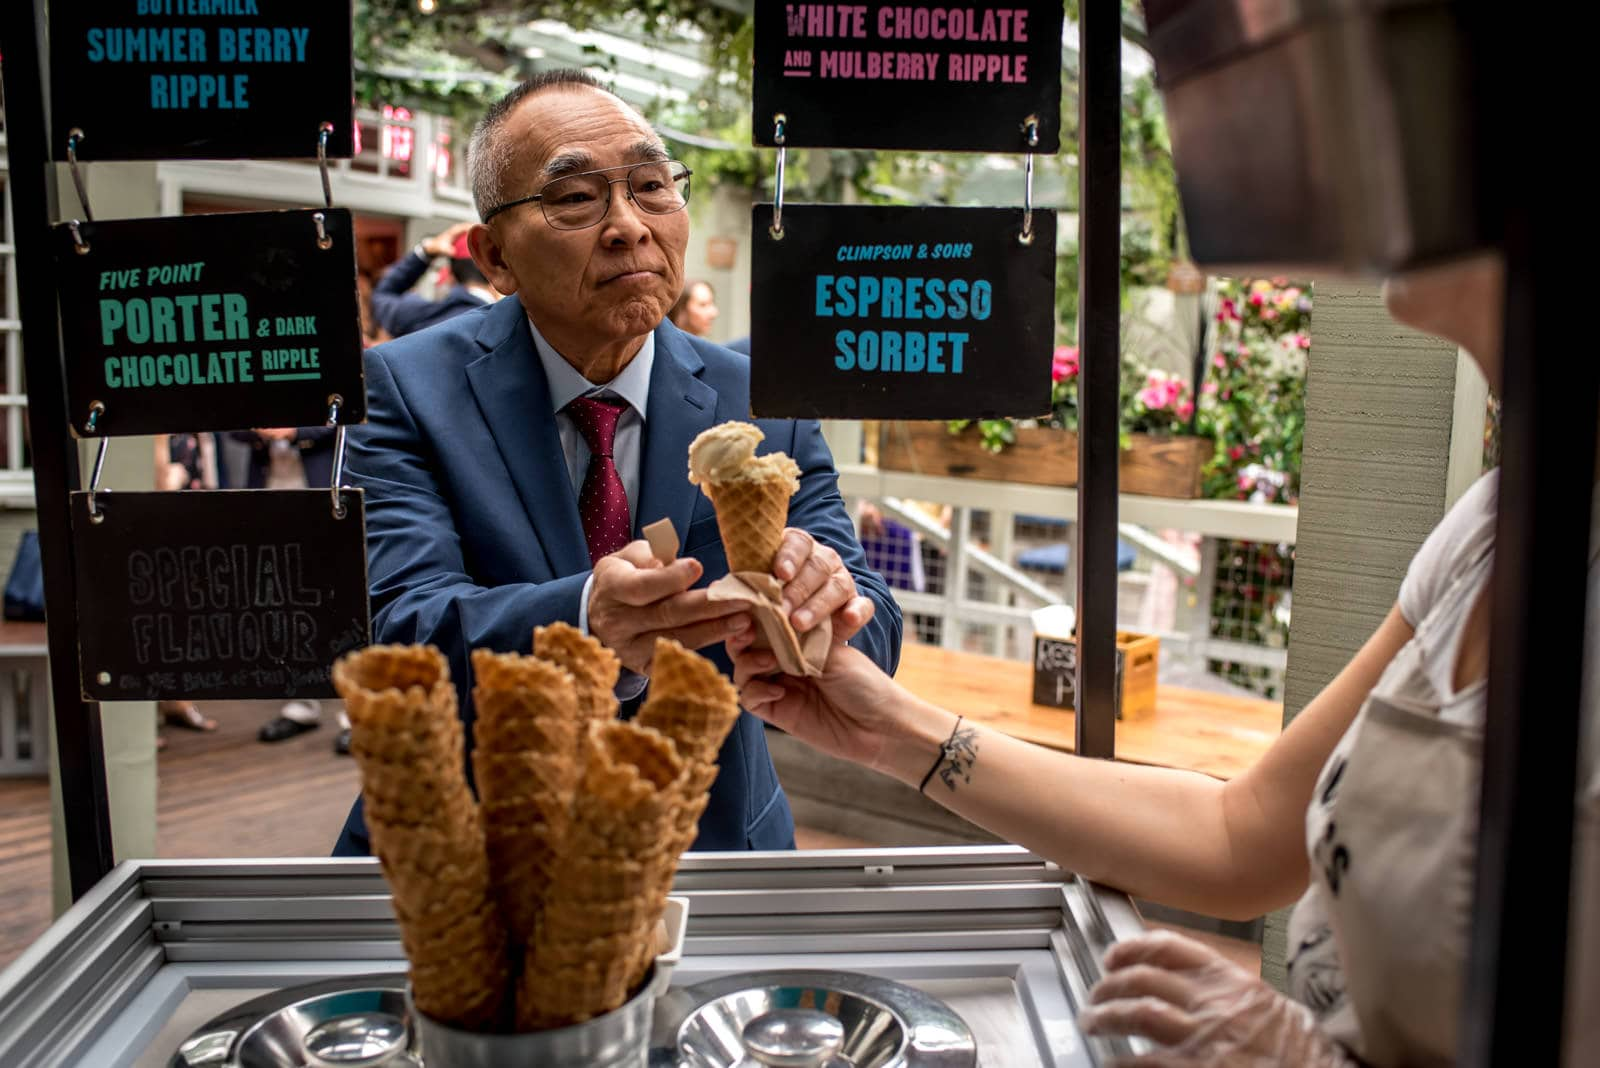 photo of groom's dad getting icecream during the wedding reception